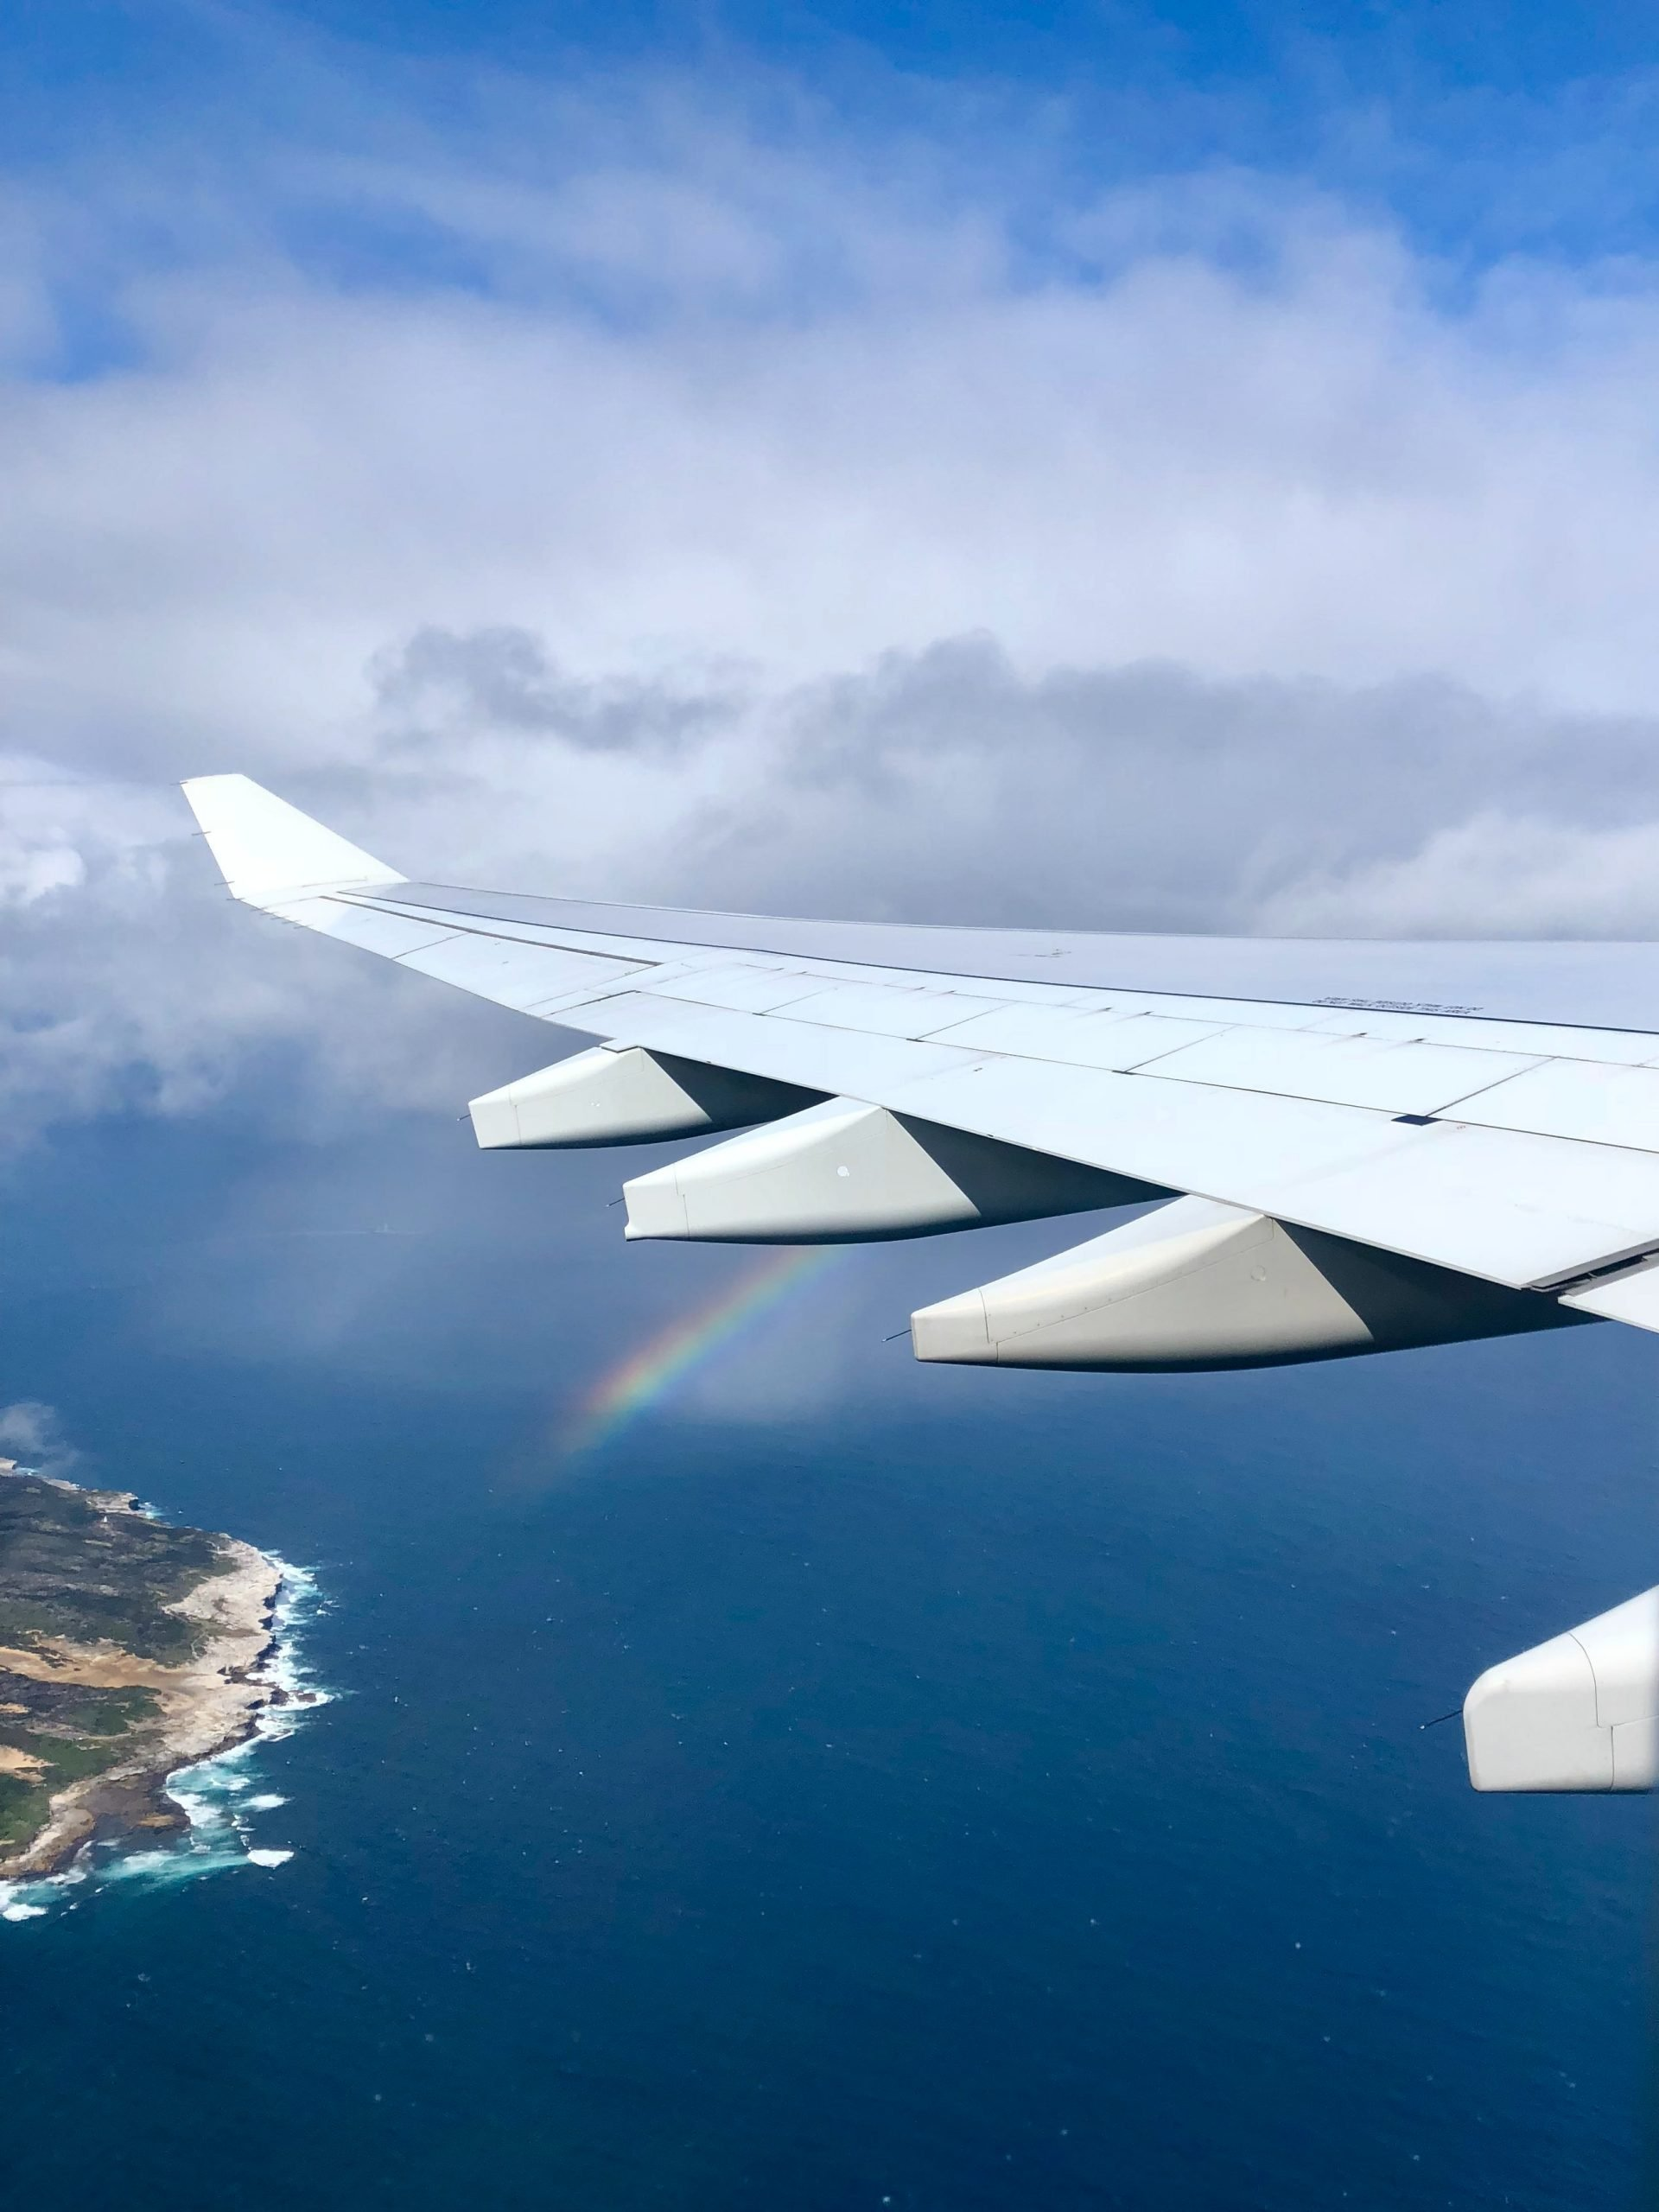 You can soar when you transfer Membership Rewards points to airline and hotel programs